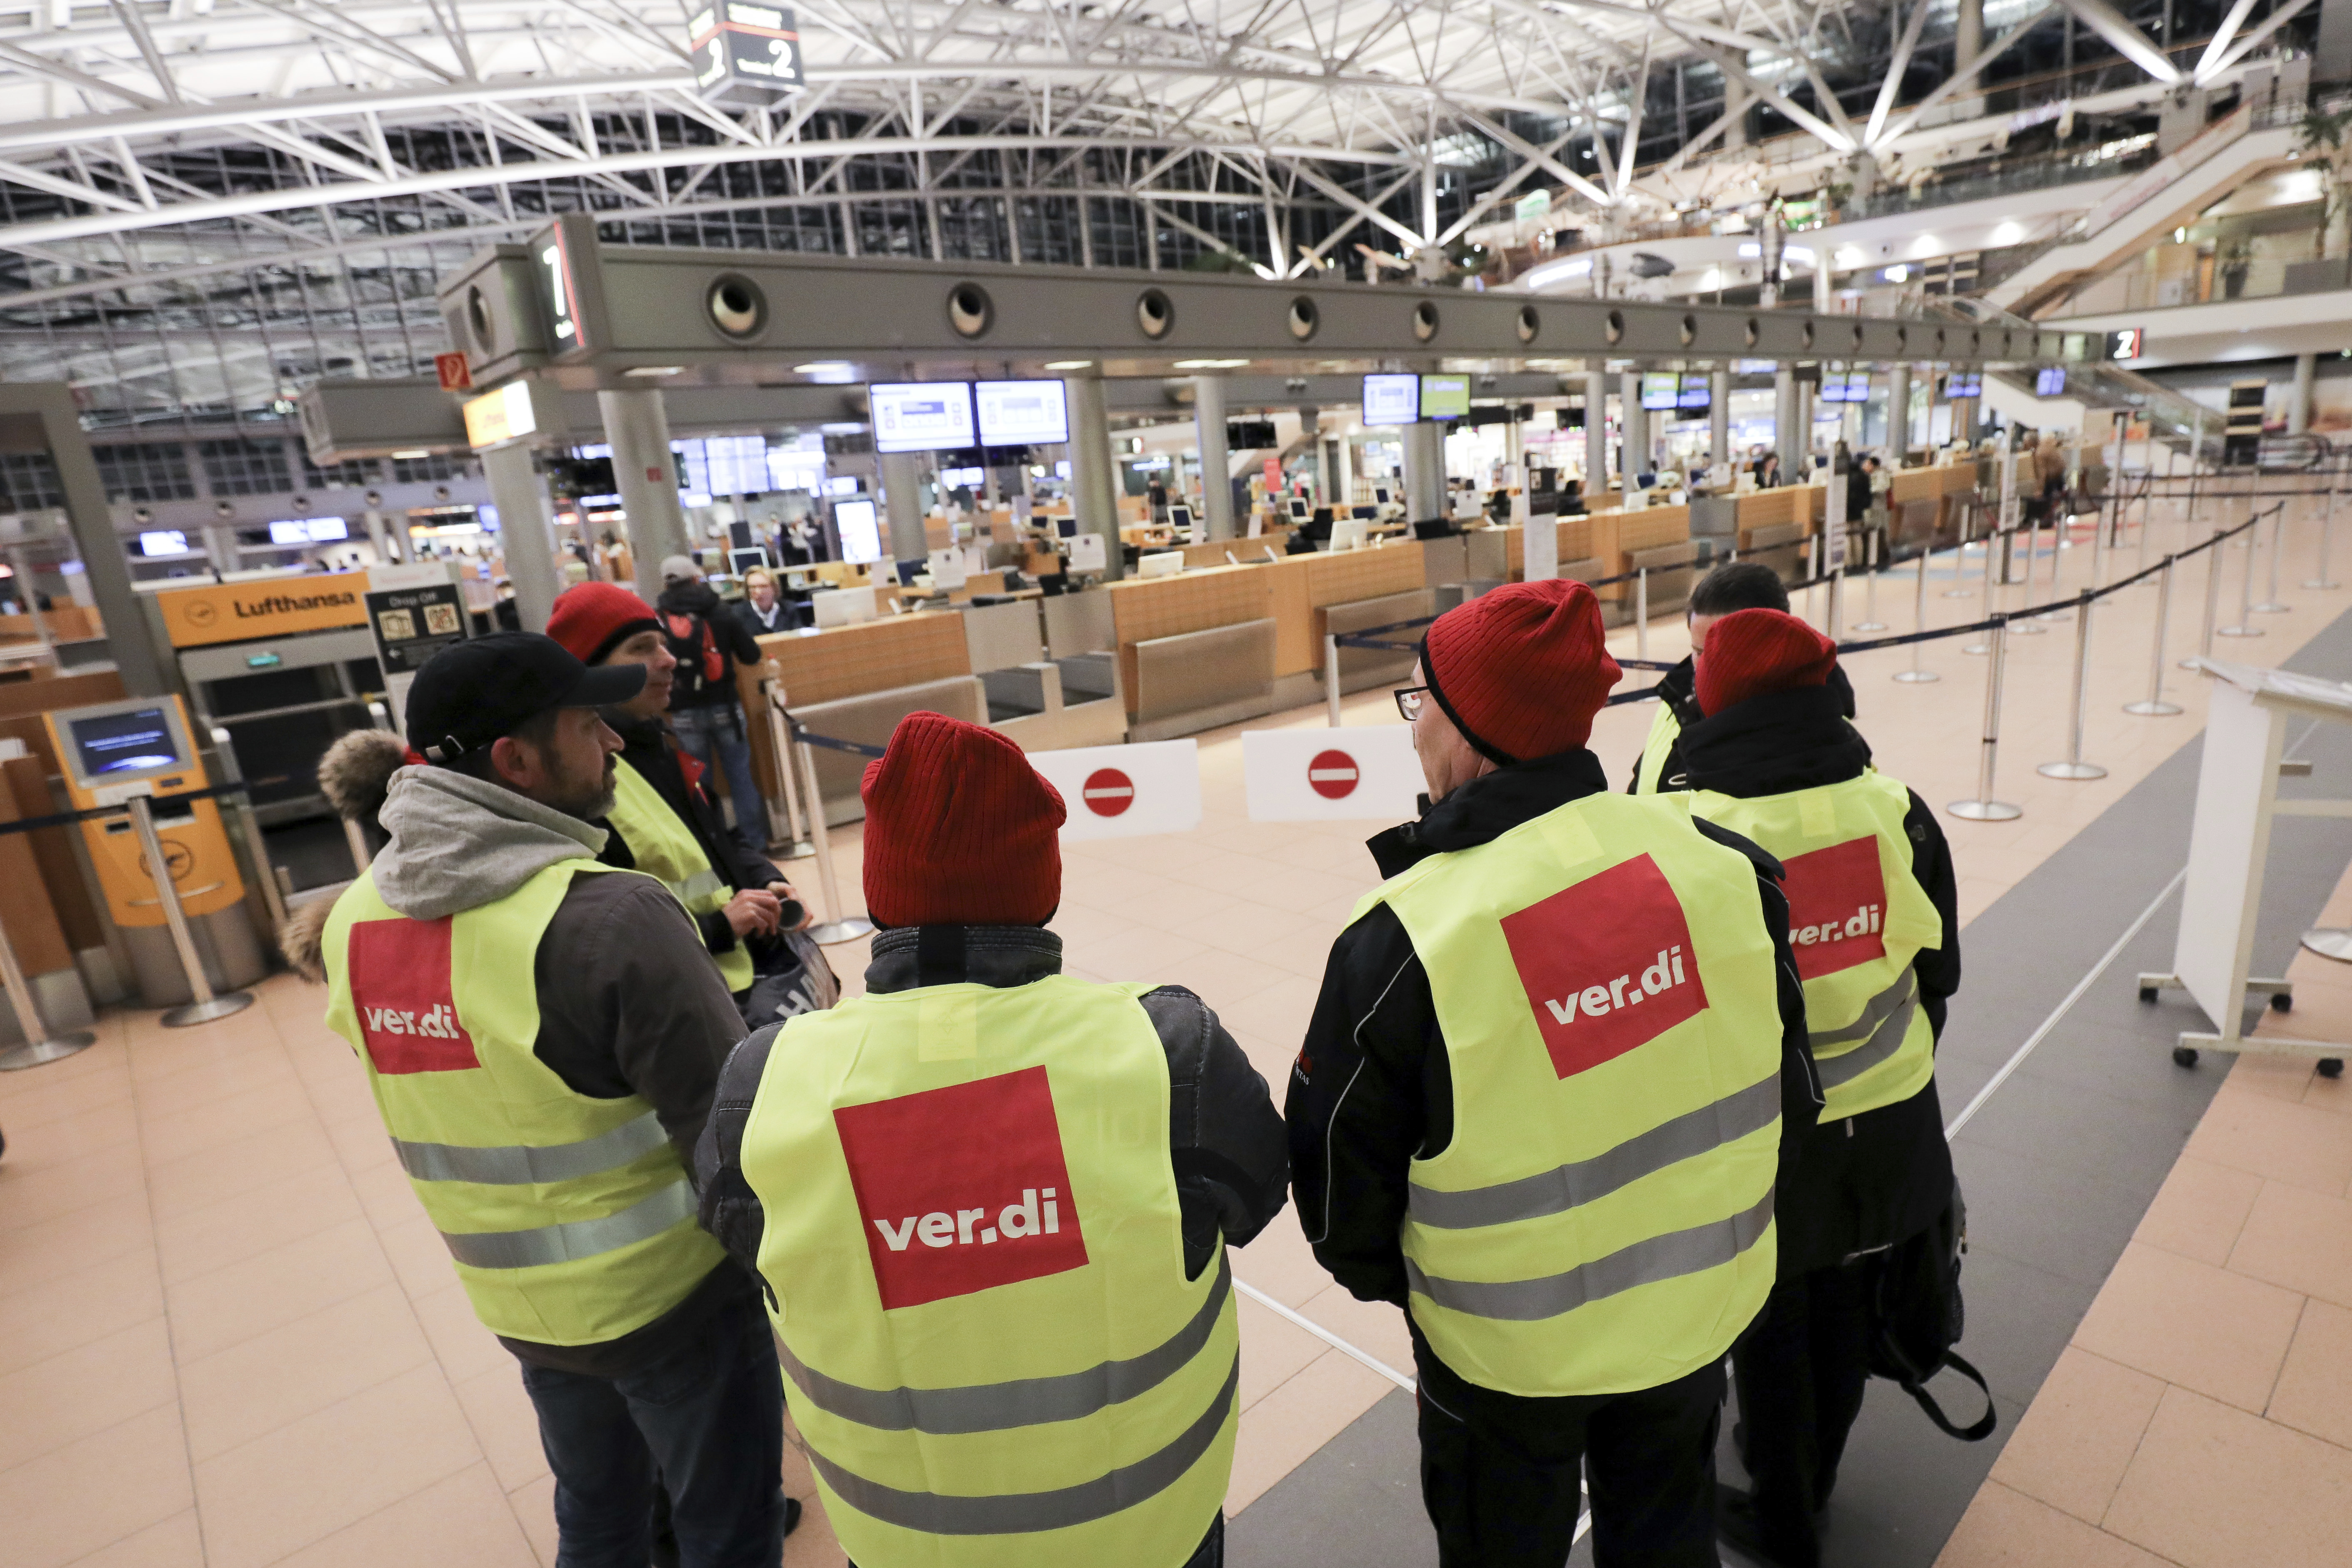 German union puts airport security strikes on hold for now